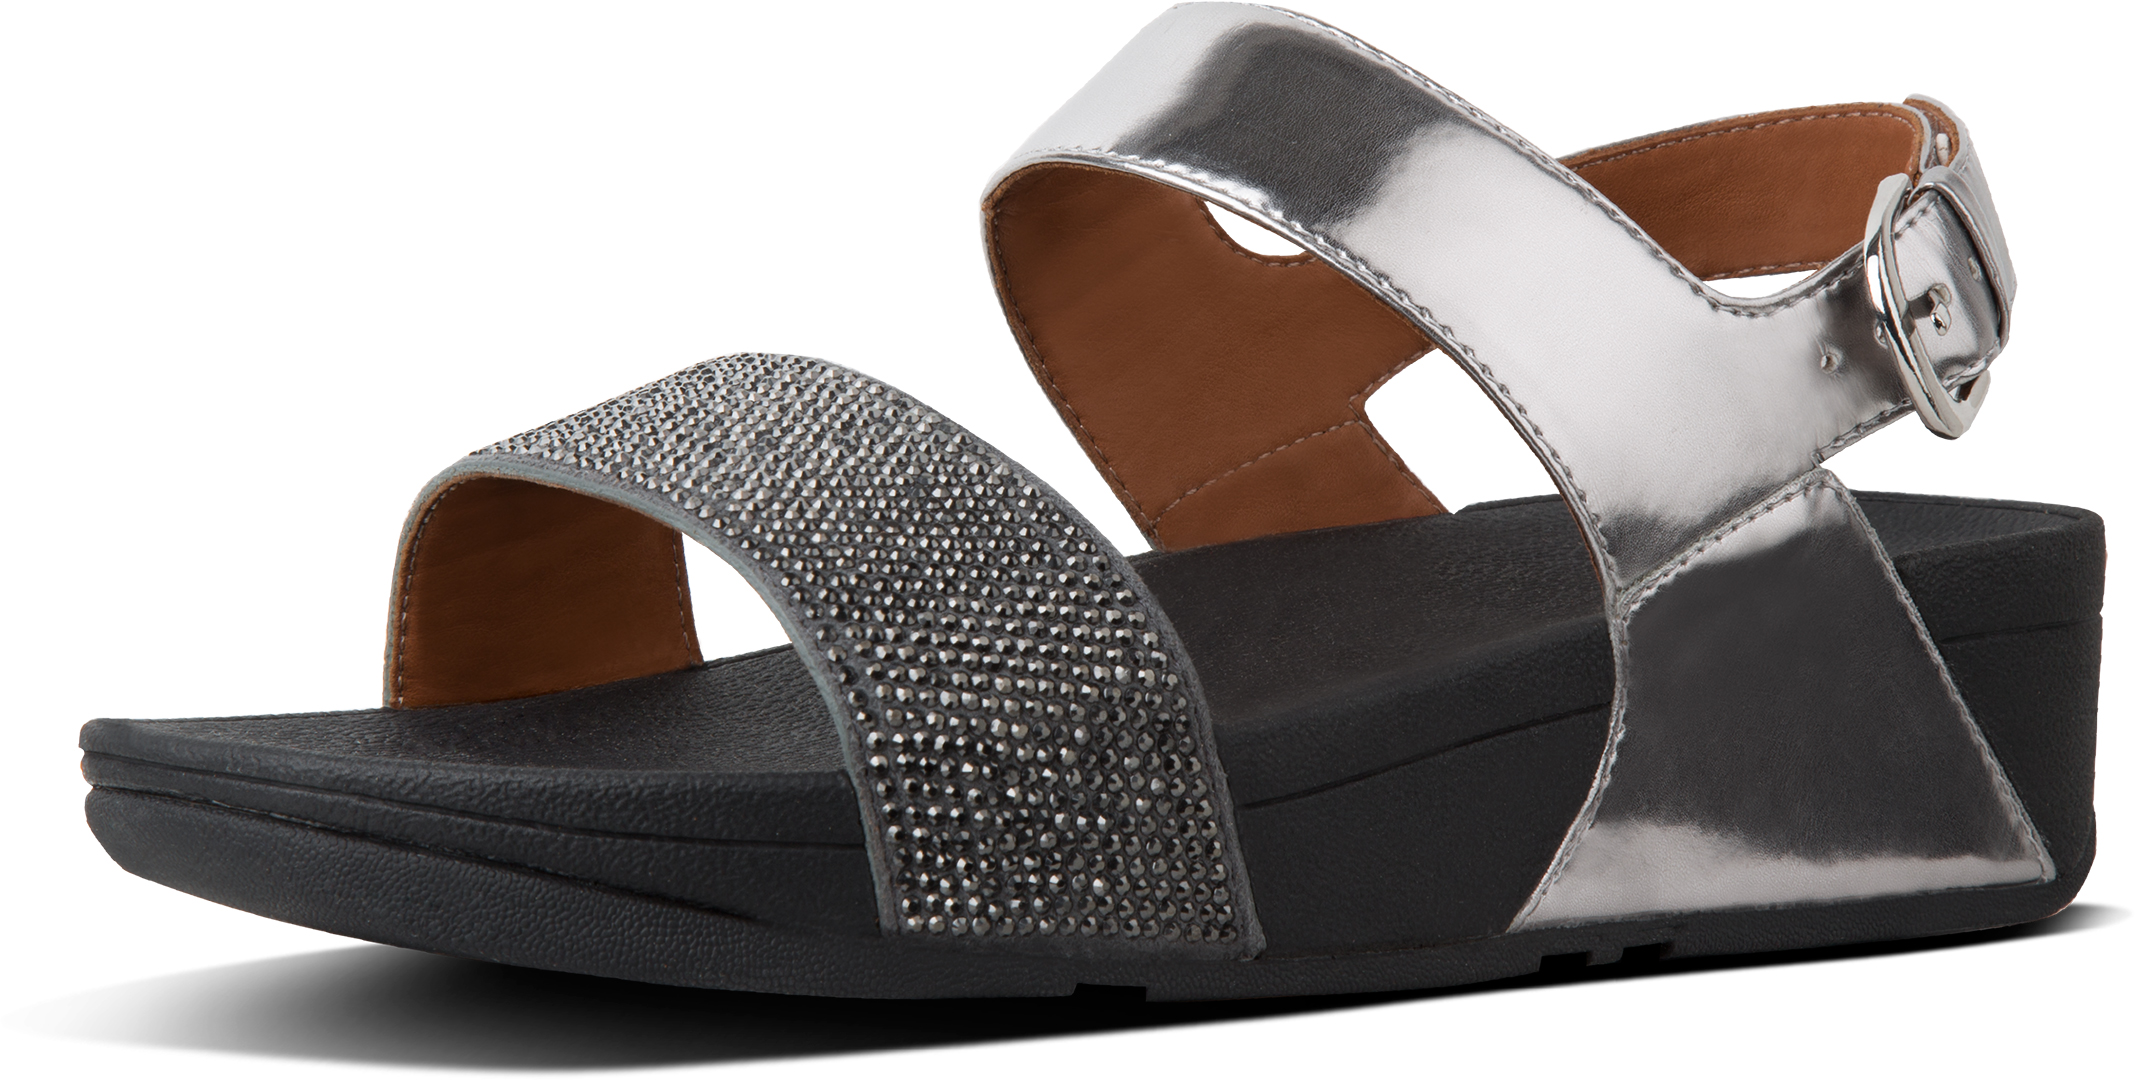 98453995e55 Fitflop RITZY BACK-STRAP Sandal 2018 pewter